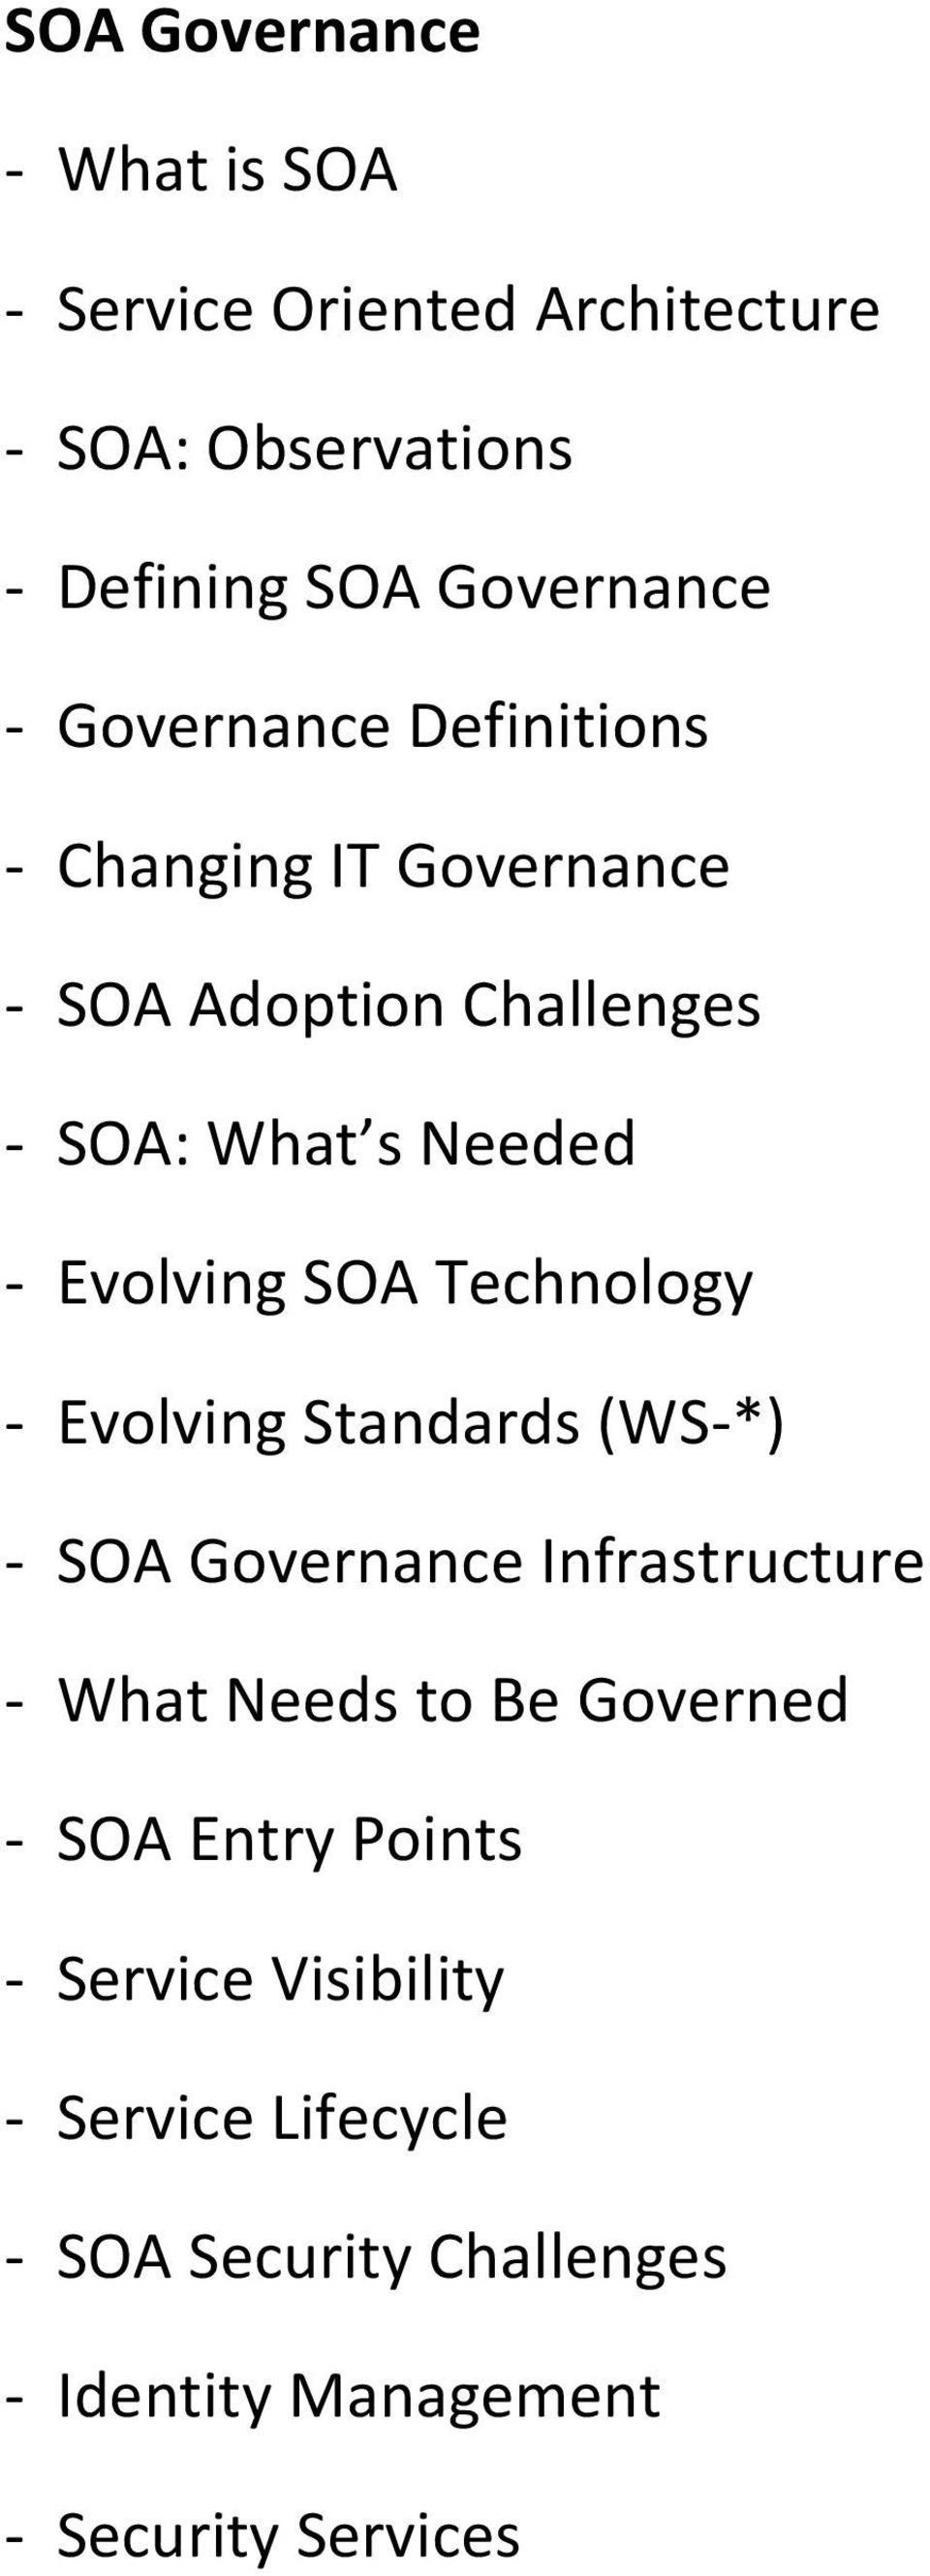 Technology - Evolving Standards (WS-*) - SOA Governance Infrastructure - What Needs to Be Governed - SOA Entry